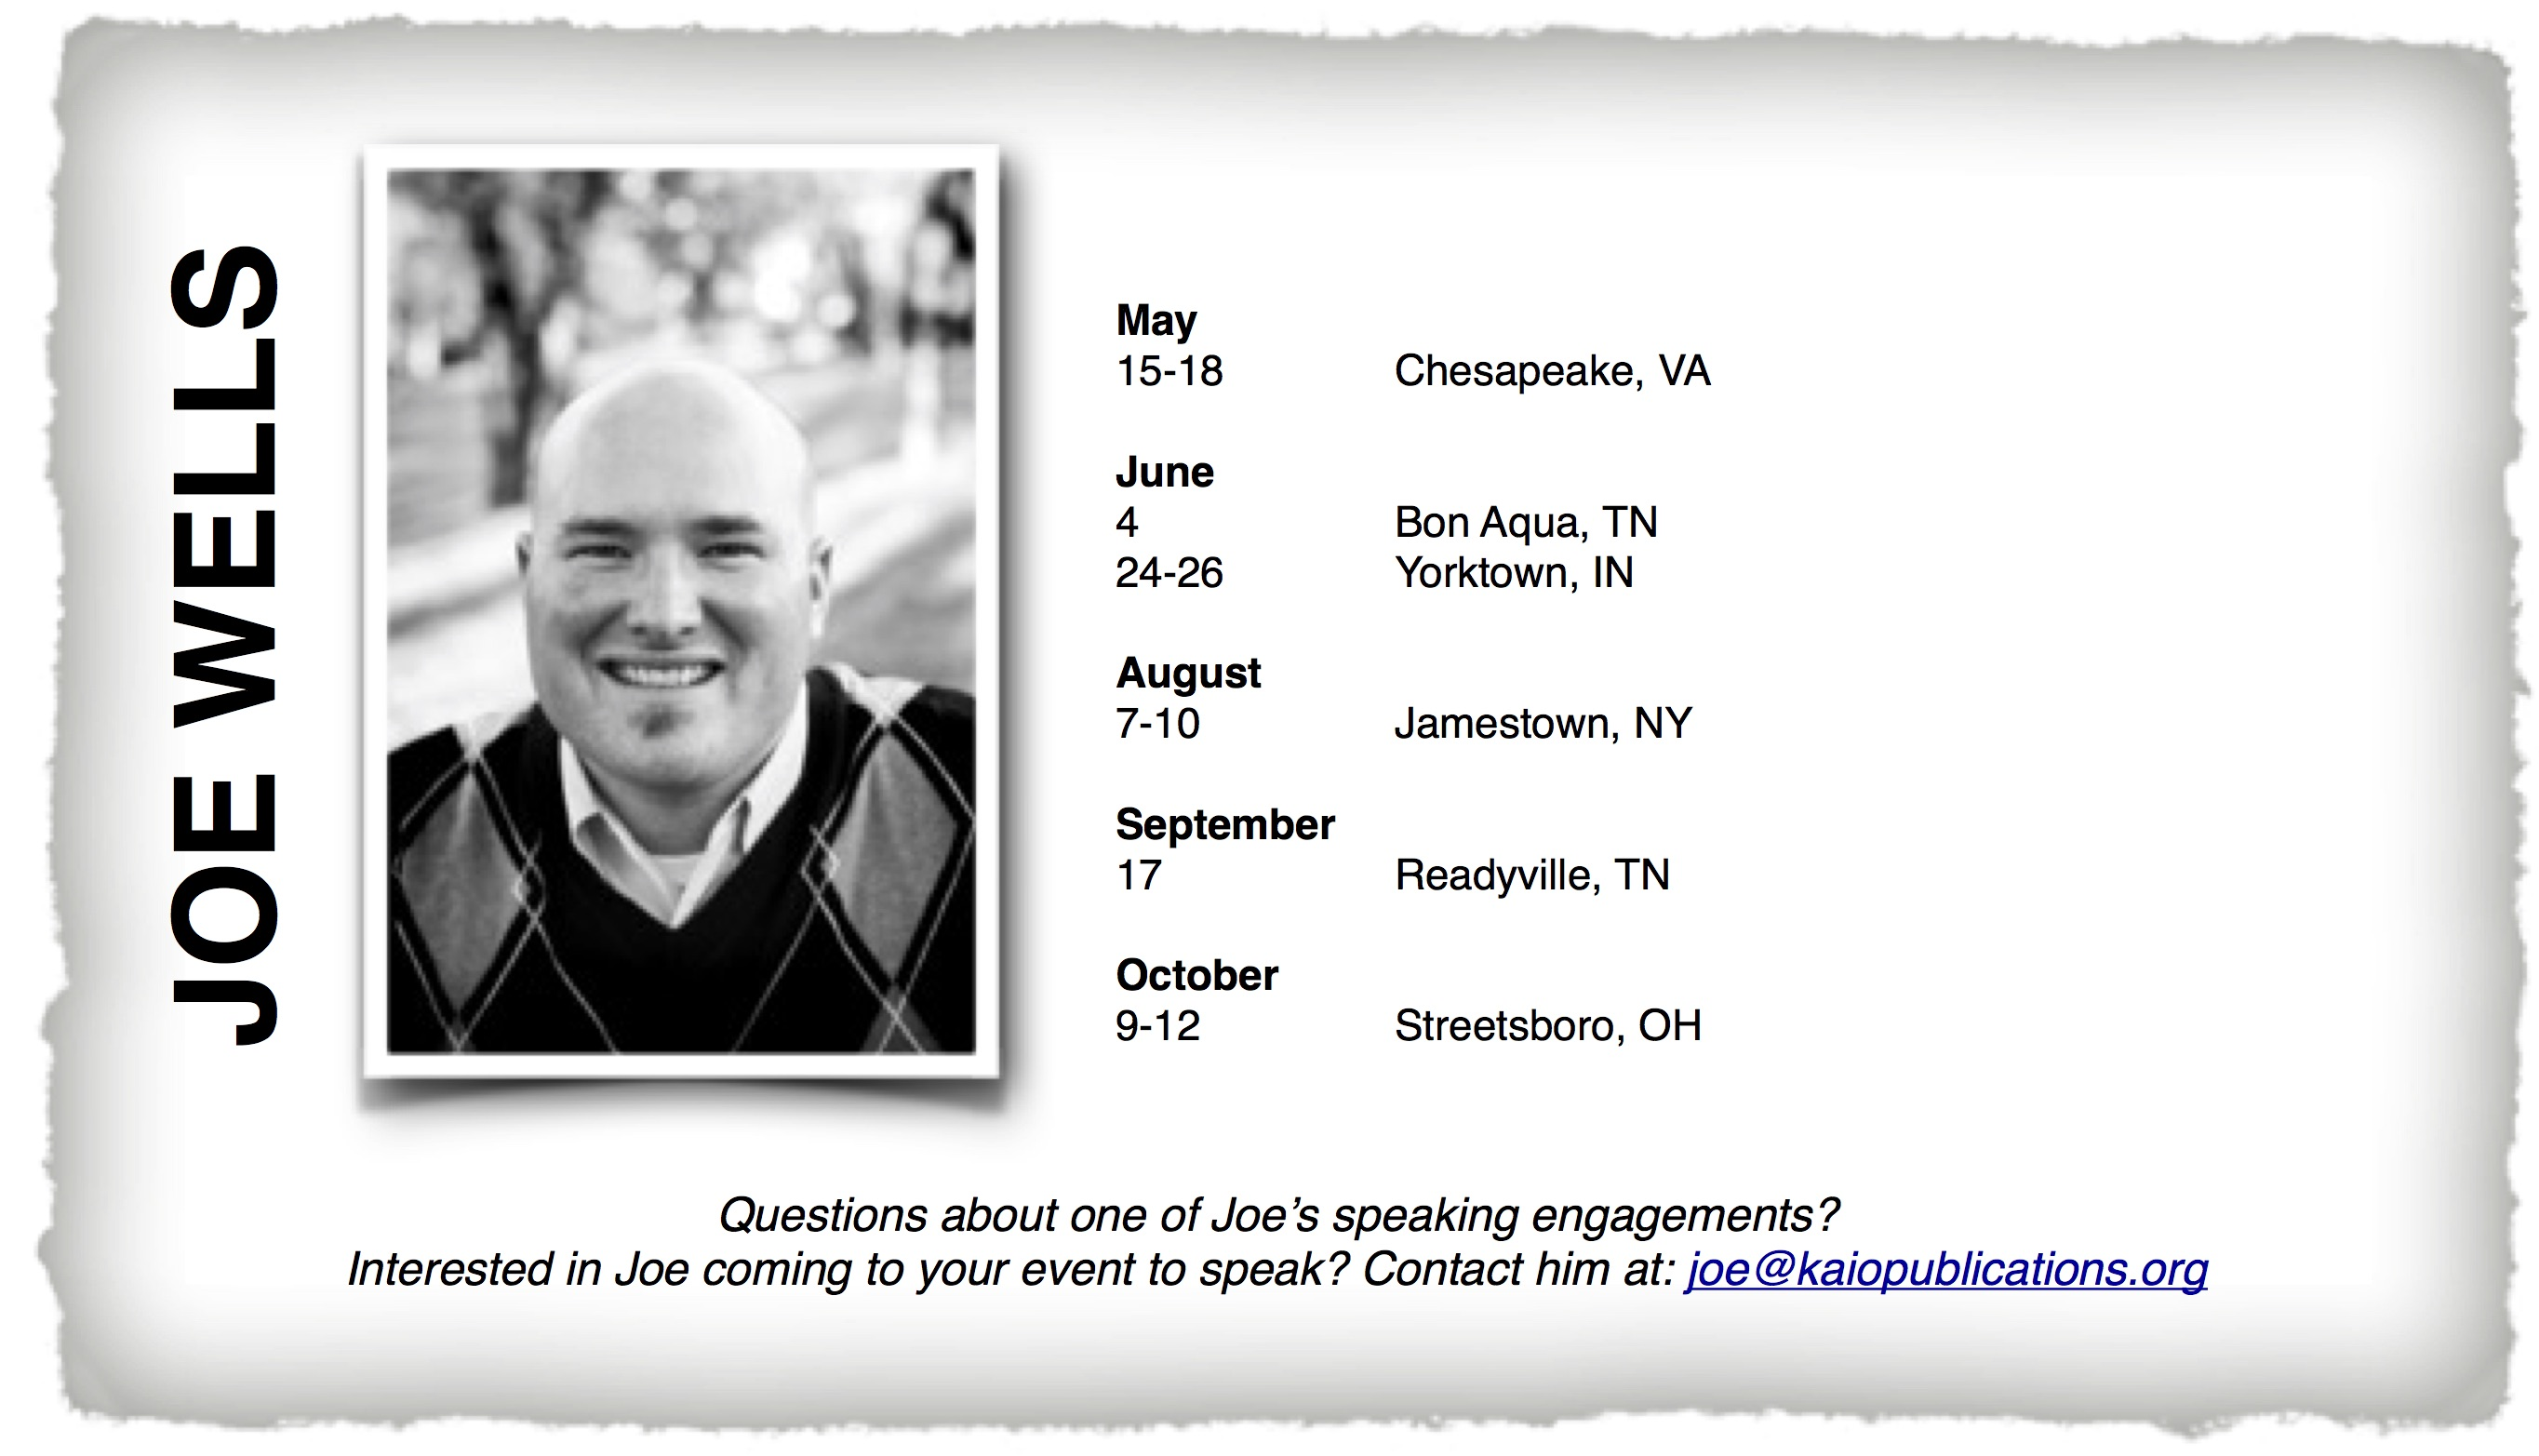 kaio-publications-speaking-schedule-for-joe-wells.jpg